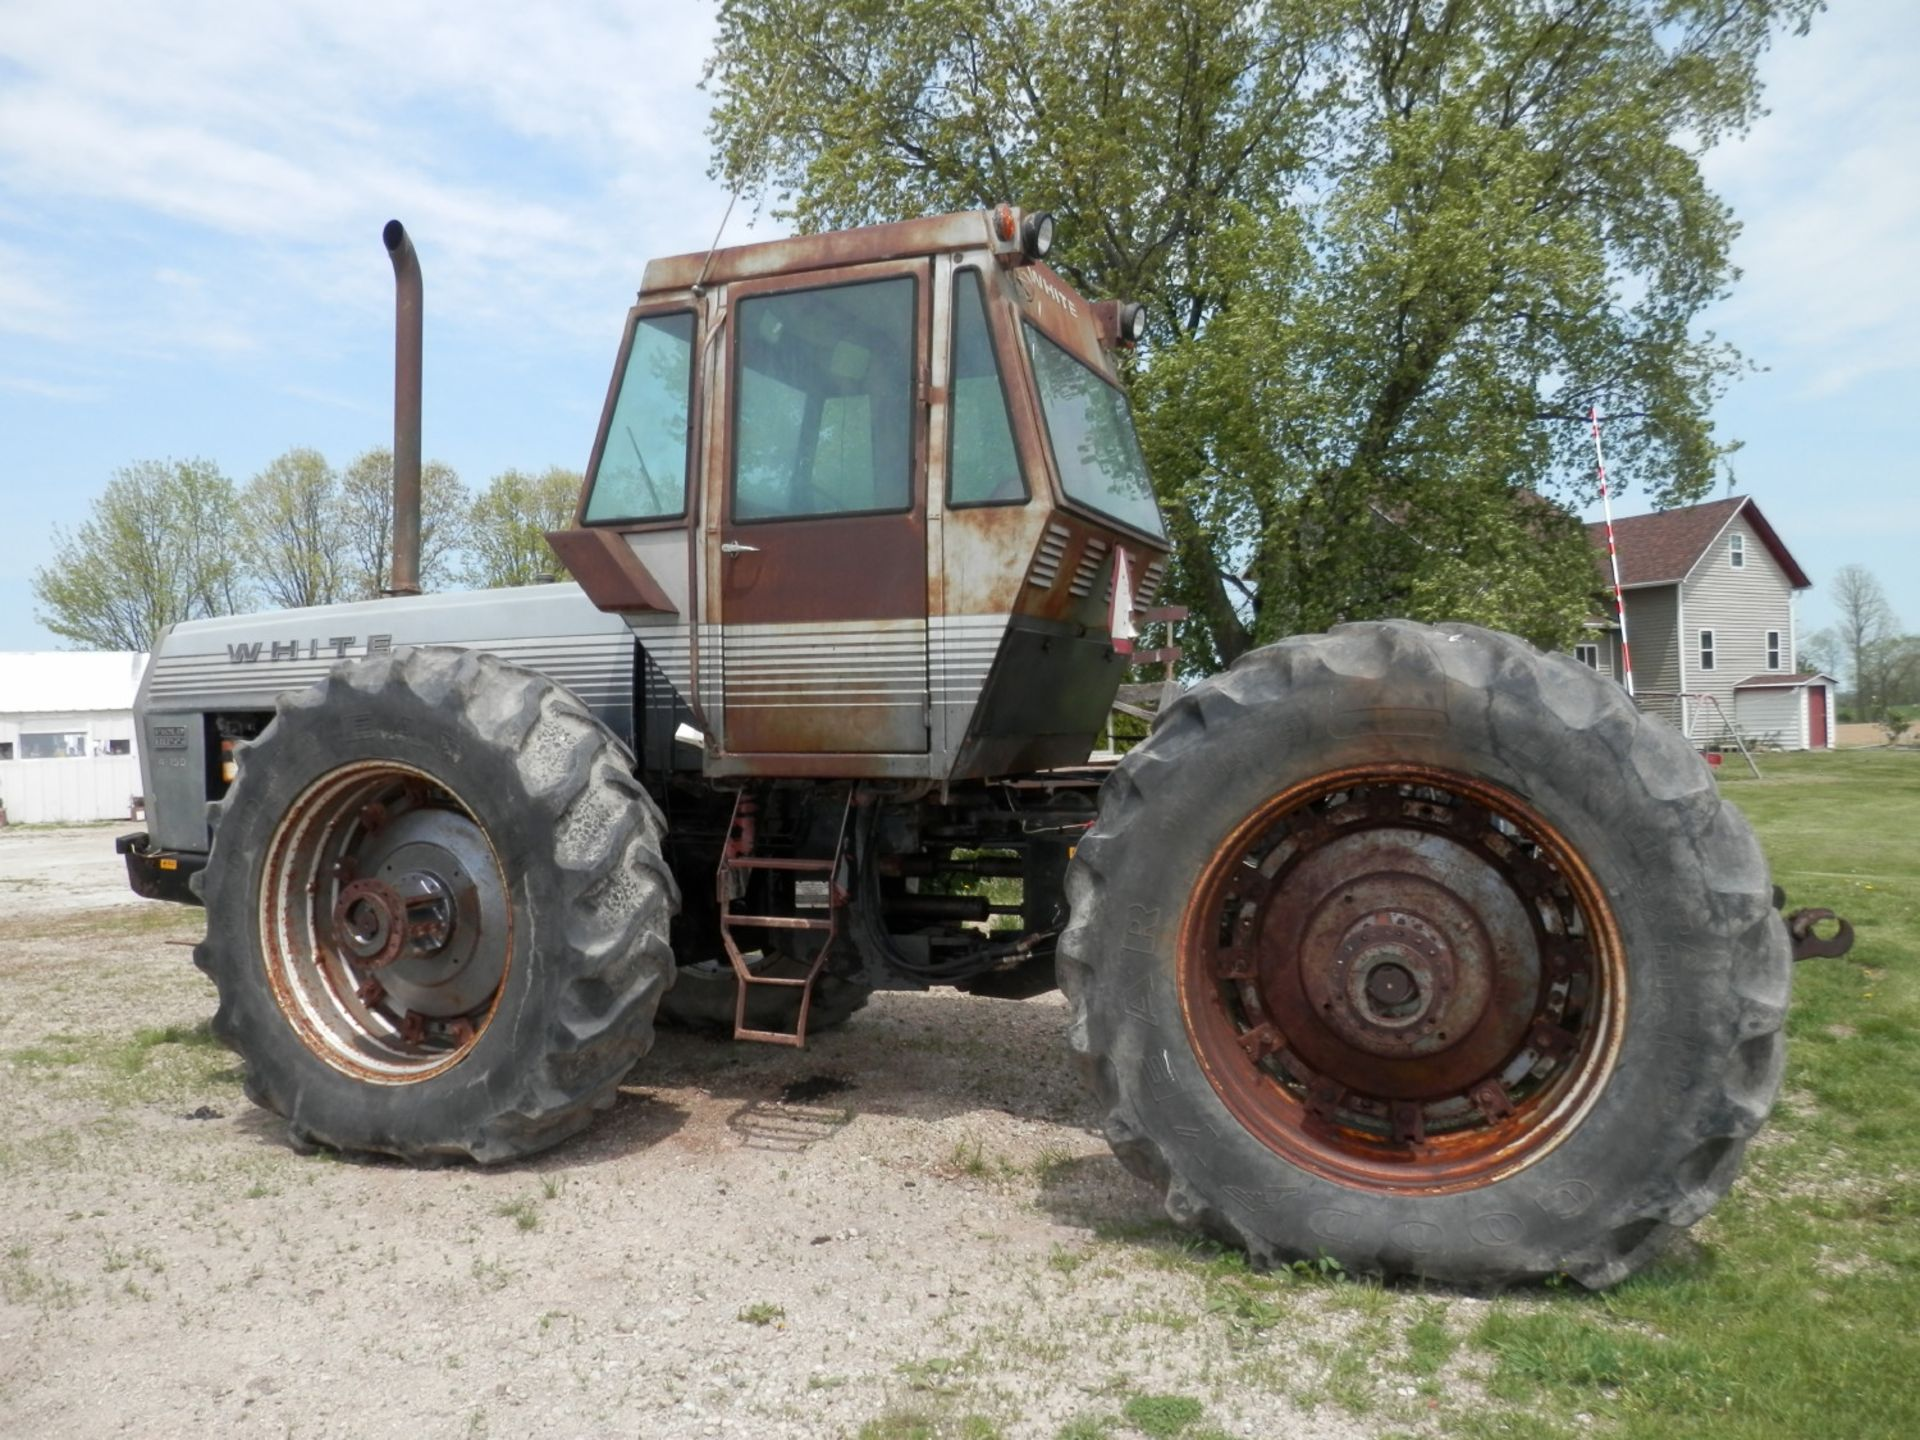 WHITE FIELD BOSS 4-150 4x4 TRACTOR - Image 3 of 8